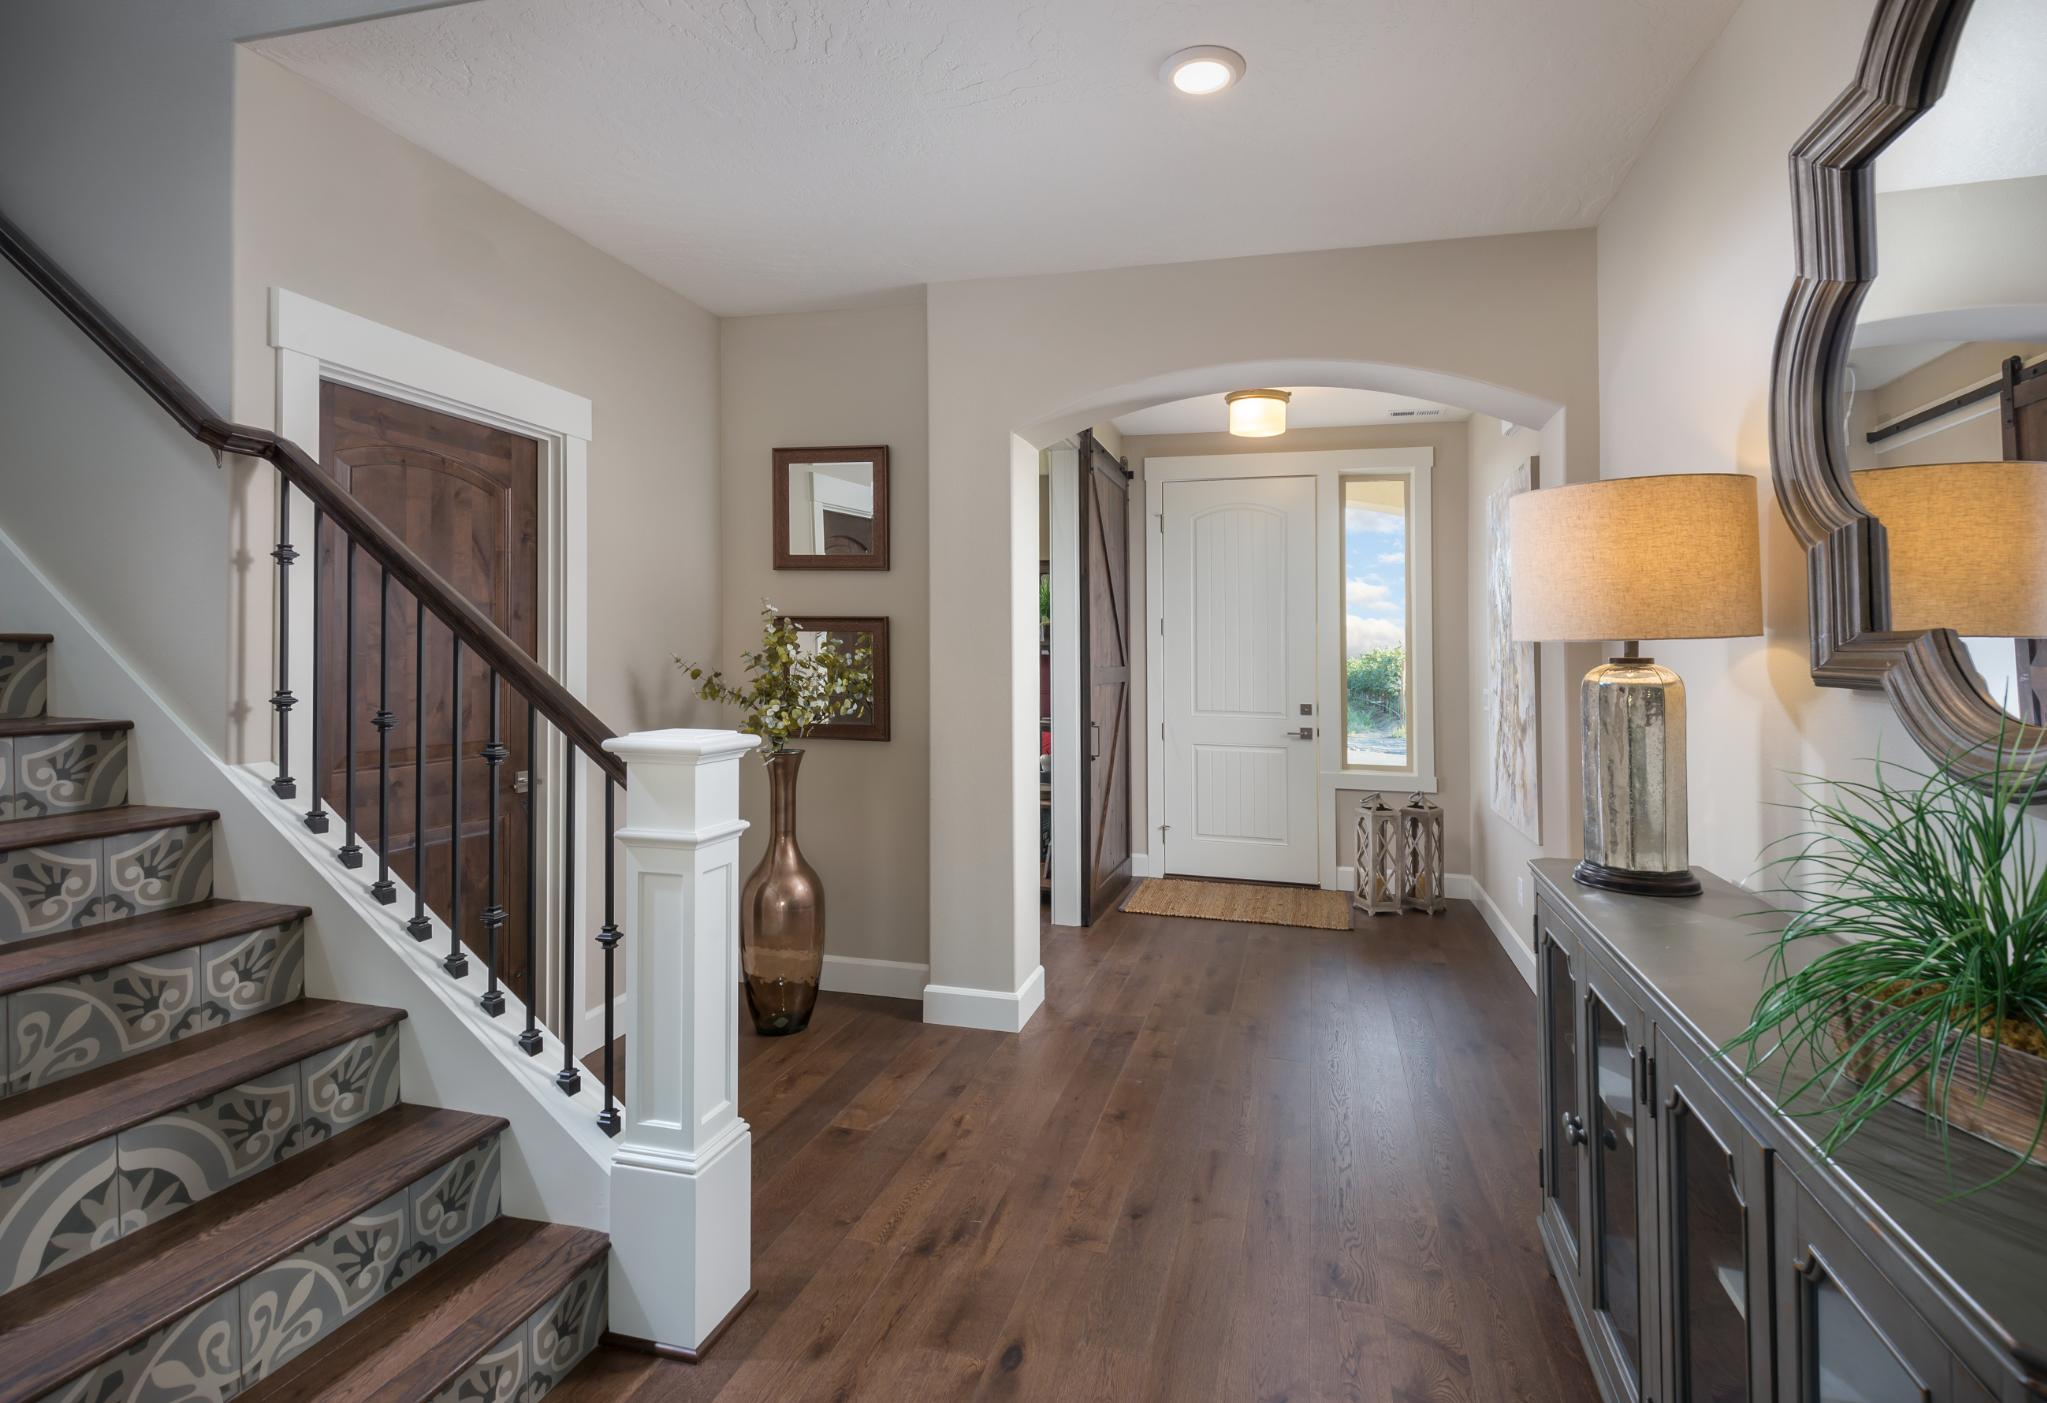 Living Area featured in the Laurelhurst By New Tradition Homes in Richland, WA